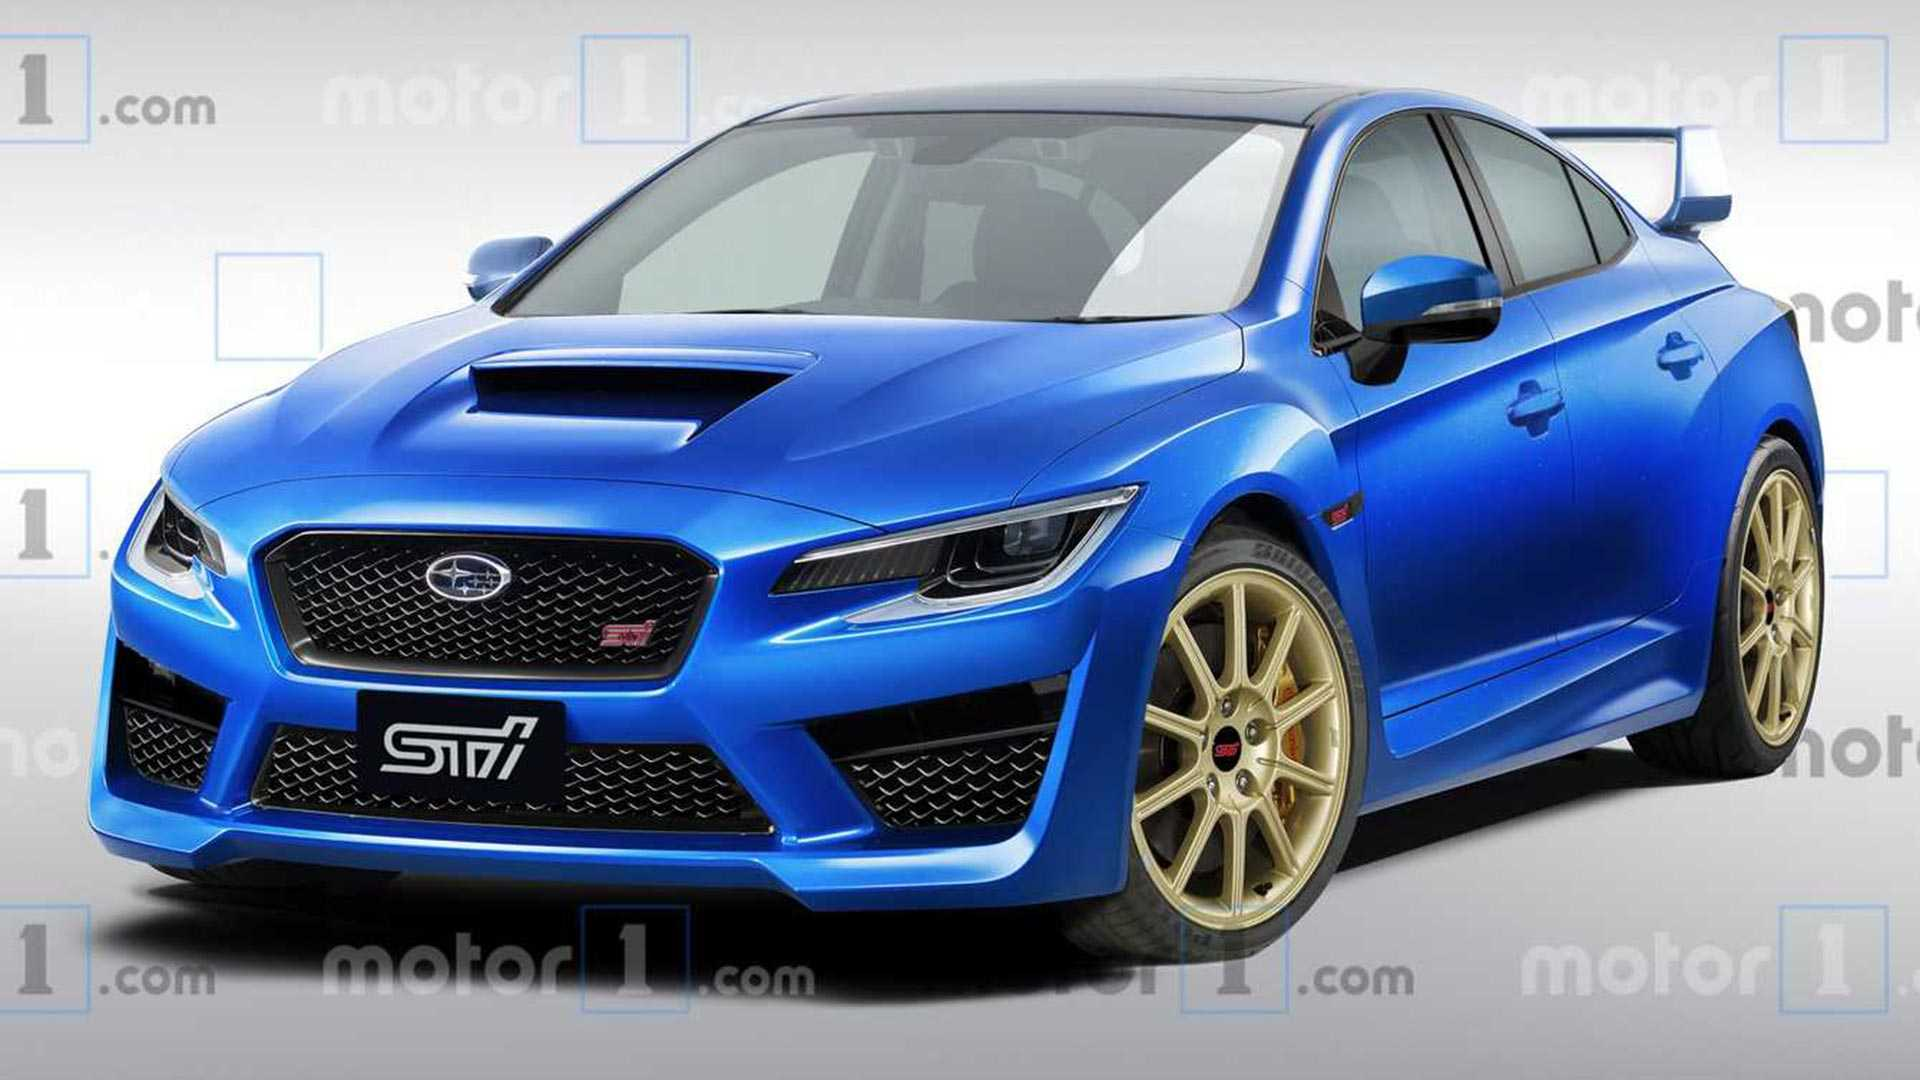 38 New 2020 Subaru Wrx Sti Review Release Date And Concept